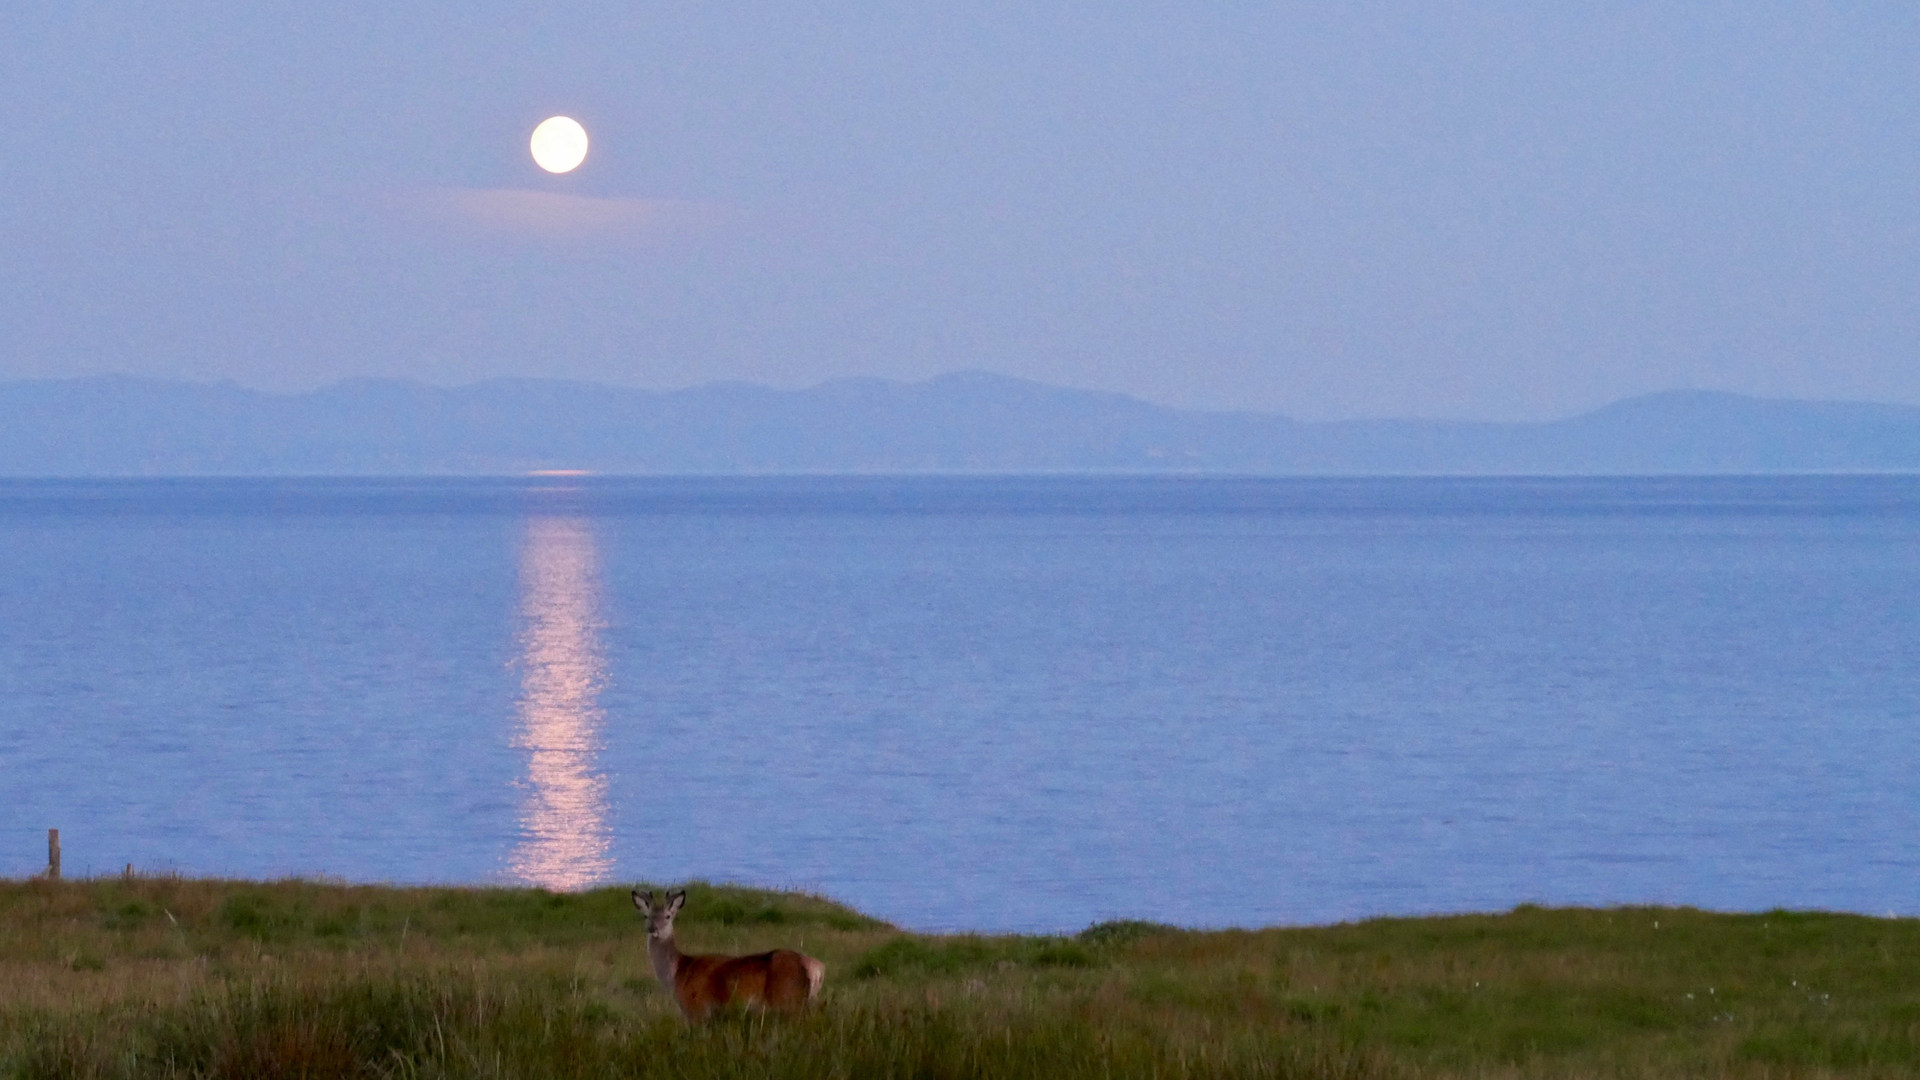 Pink Moon and Deer